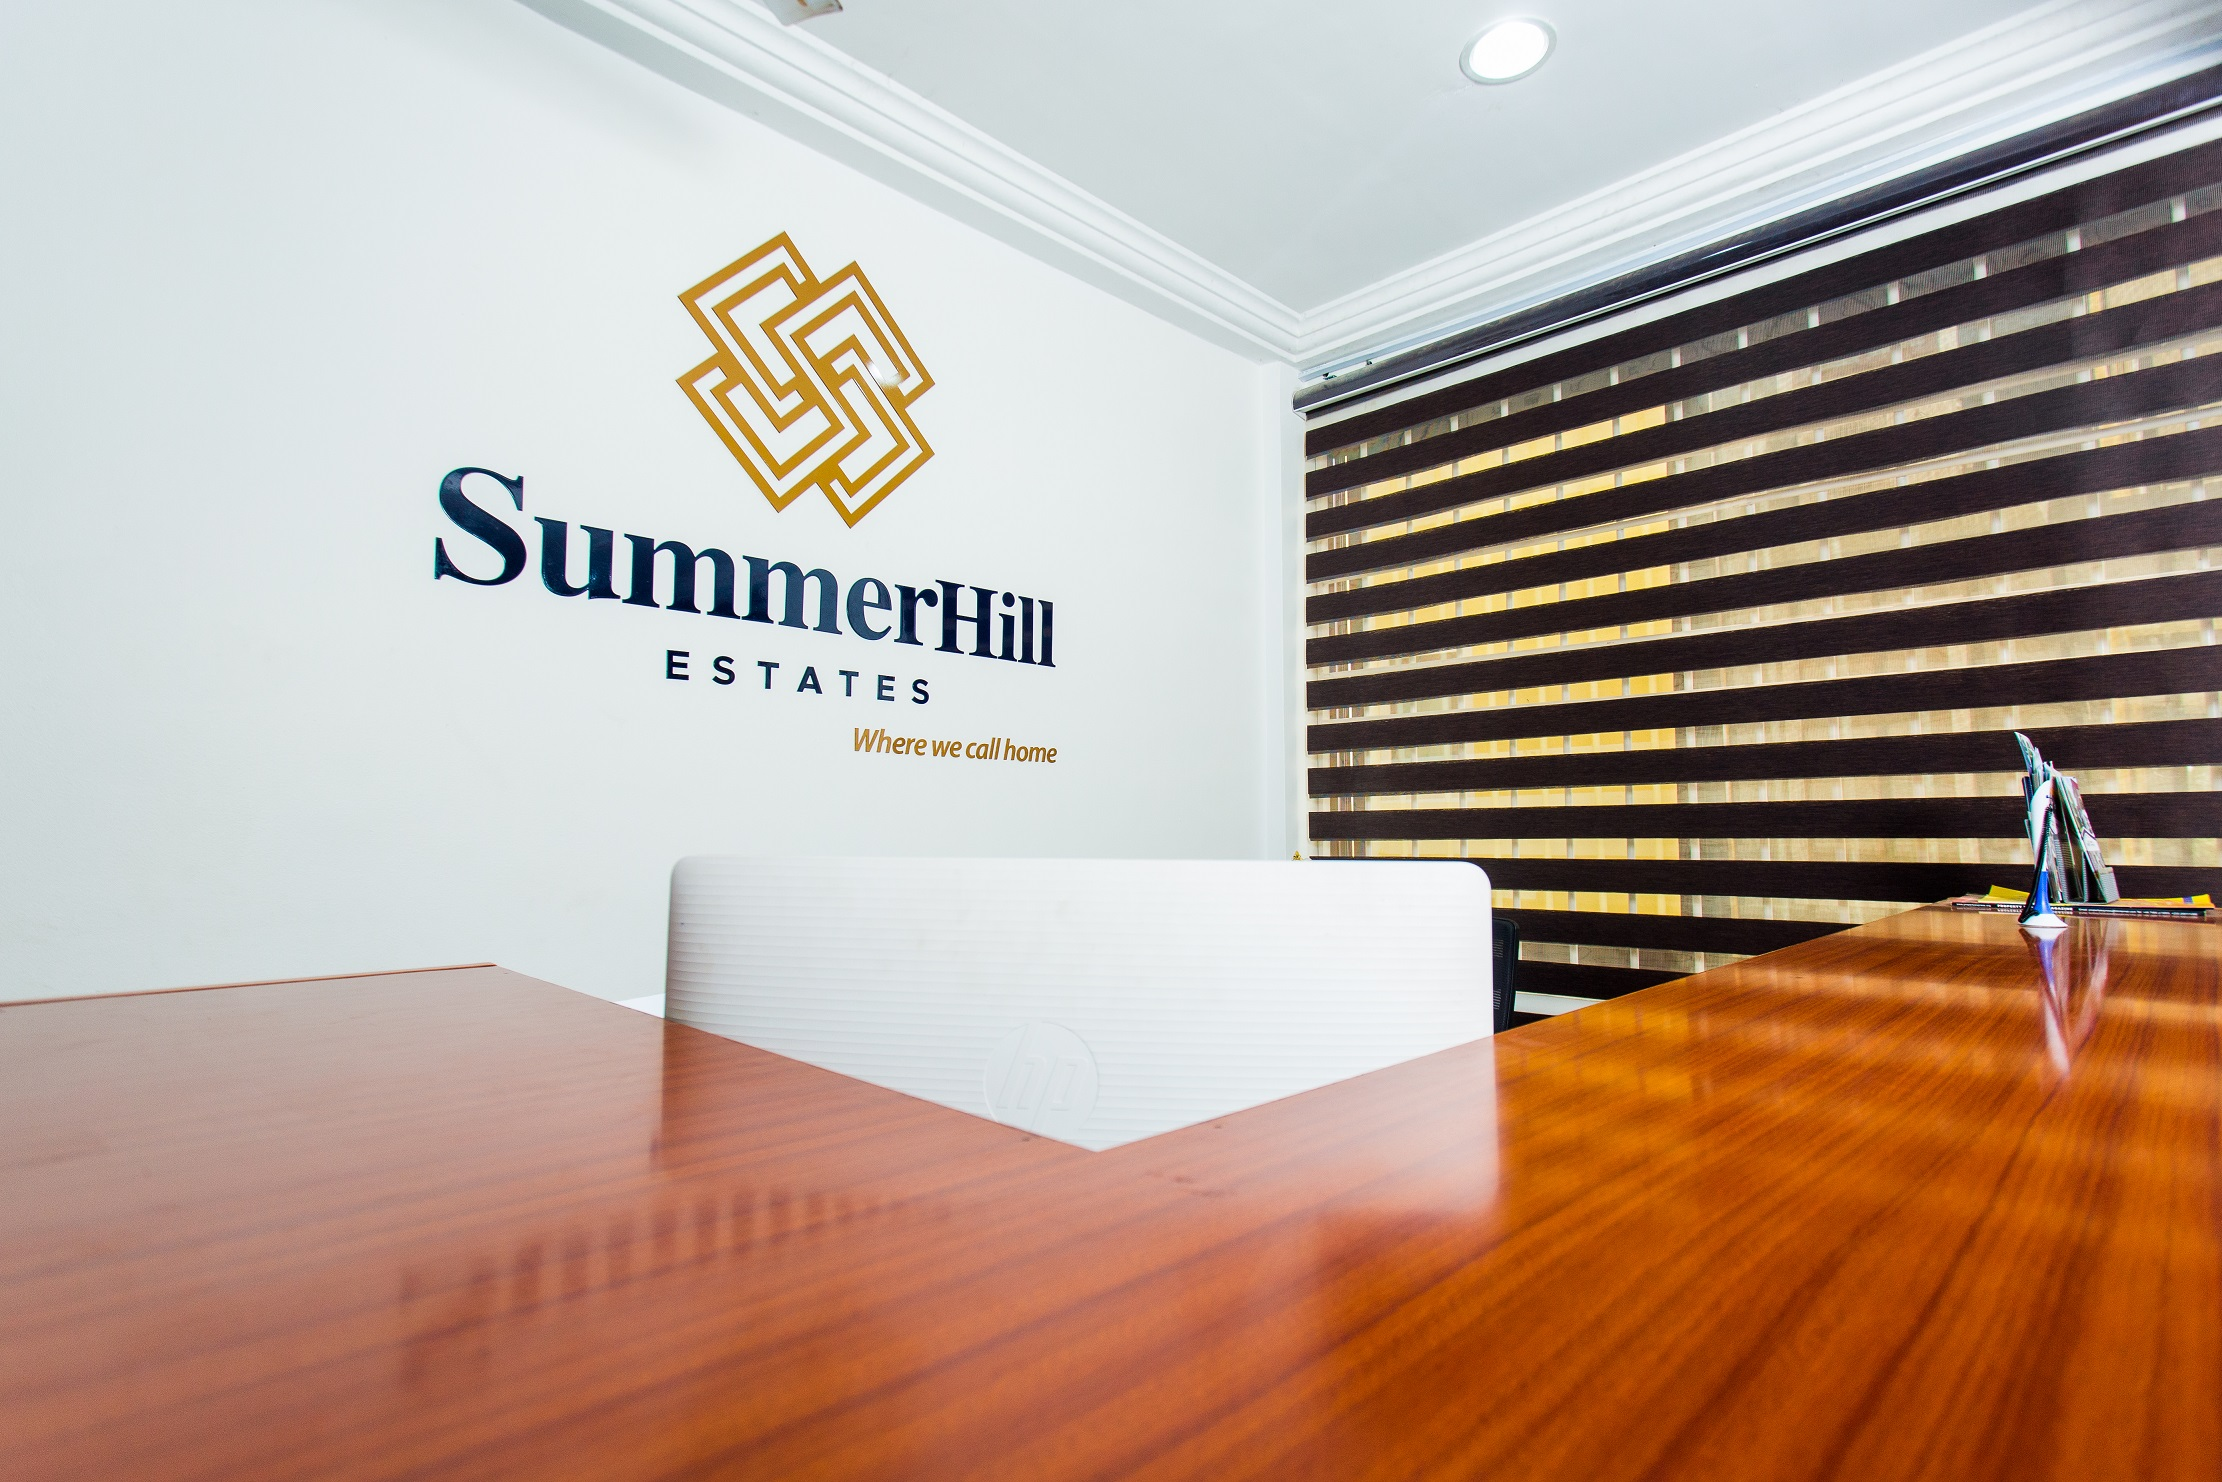 Nananom Group of Companies Launches SummerHill Estates